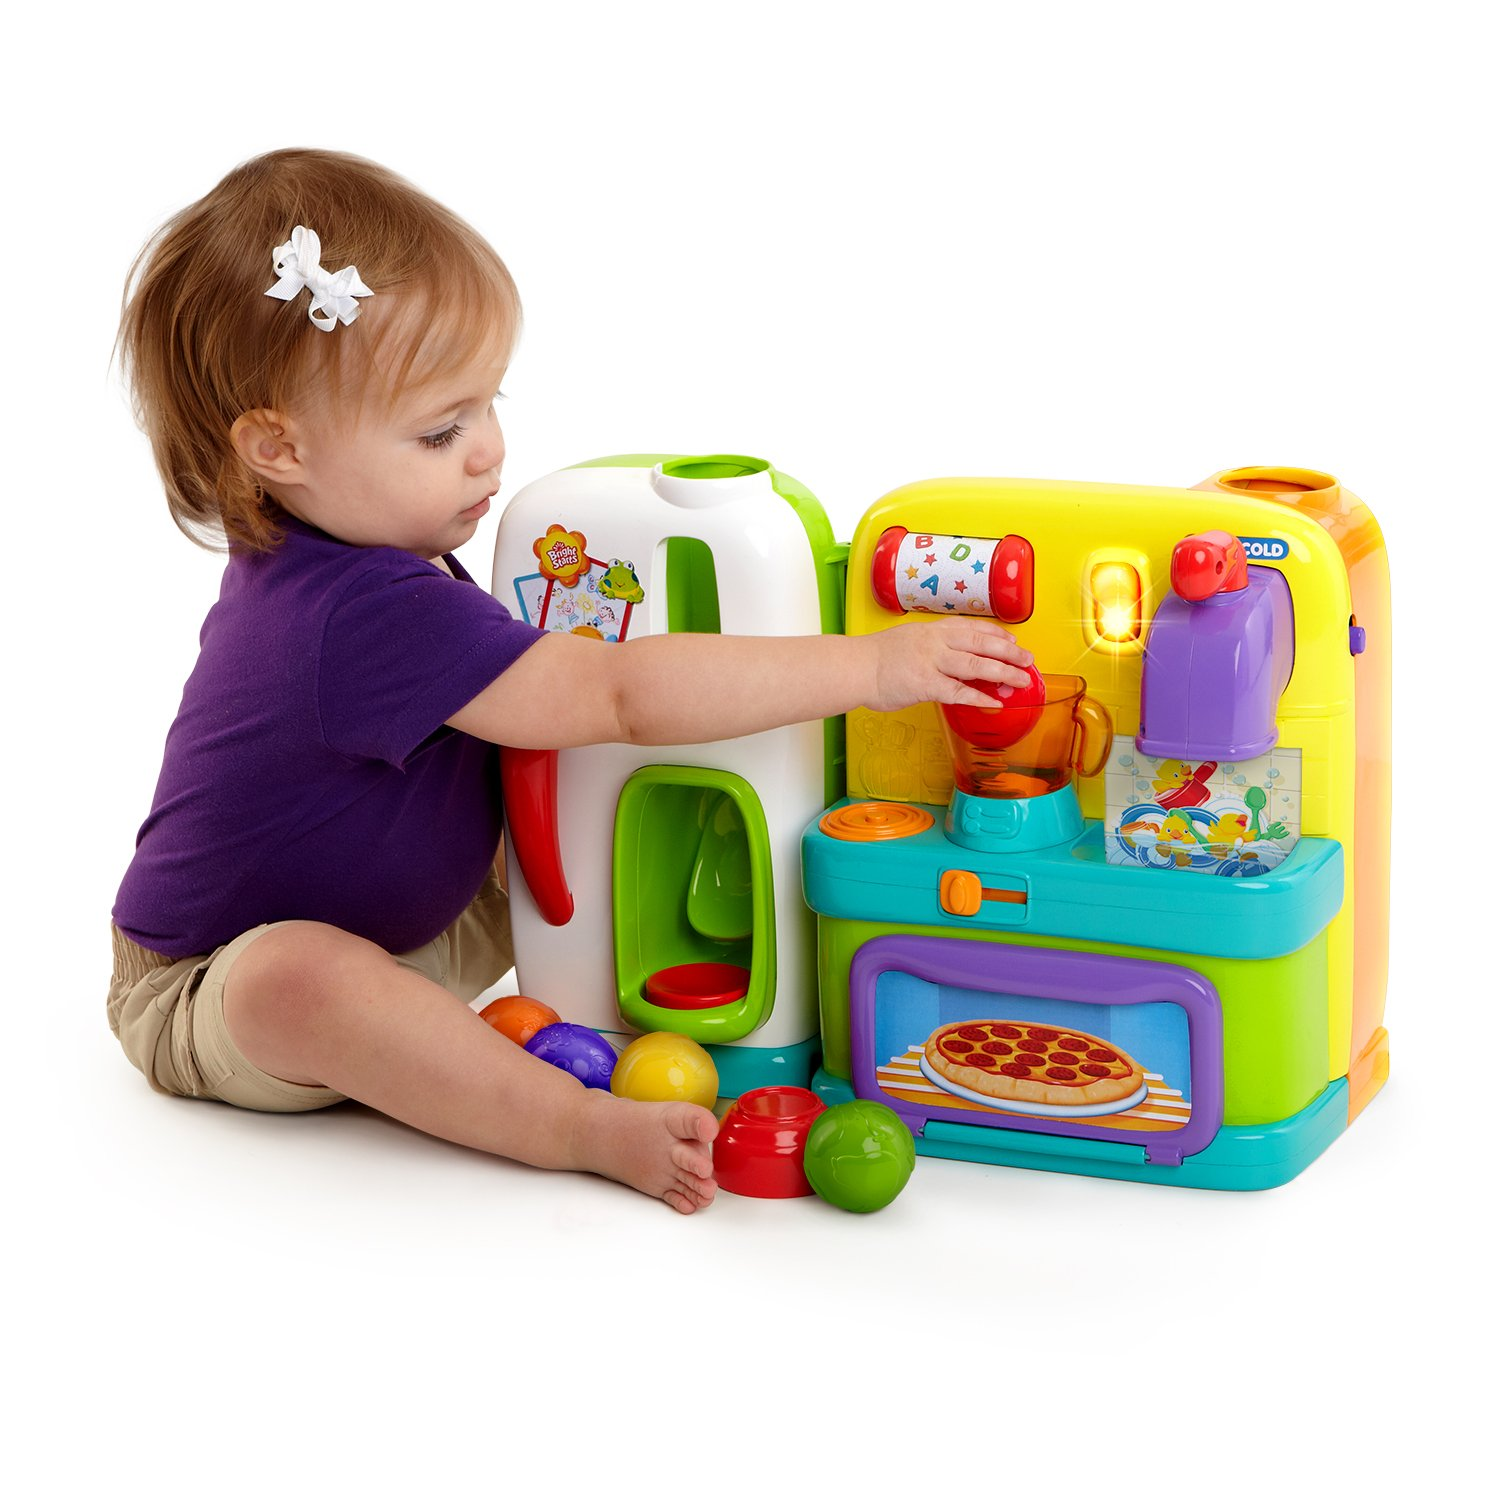 Amazon.com : Bright Starts Get Cookin\' Kitchen Toy (Discontinued by ...